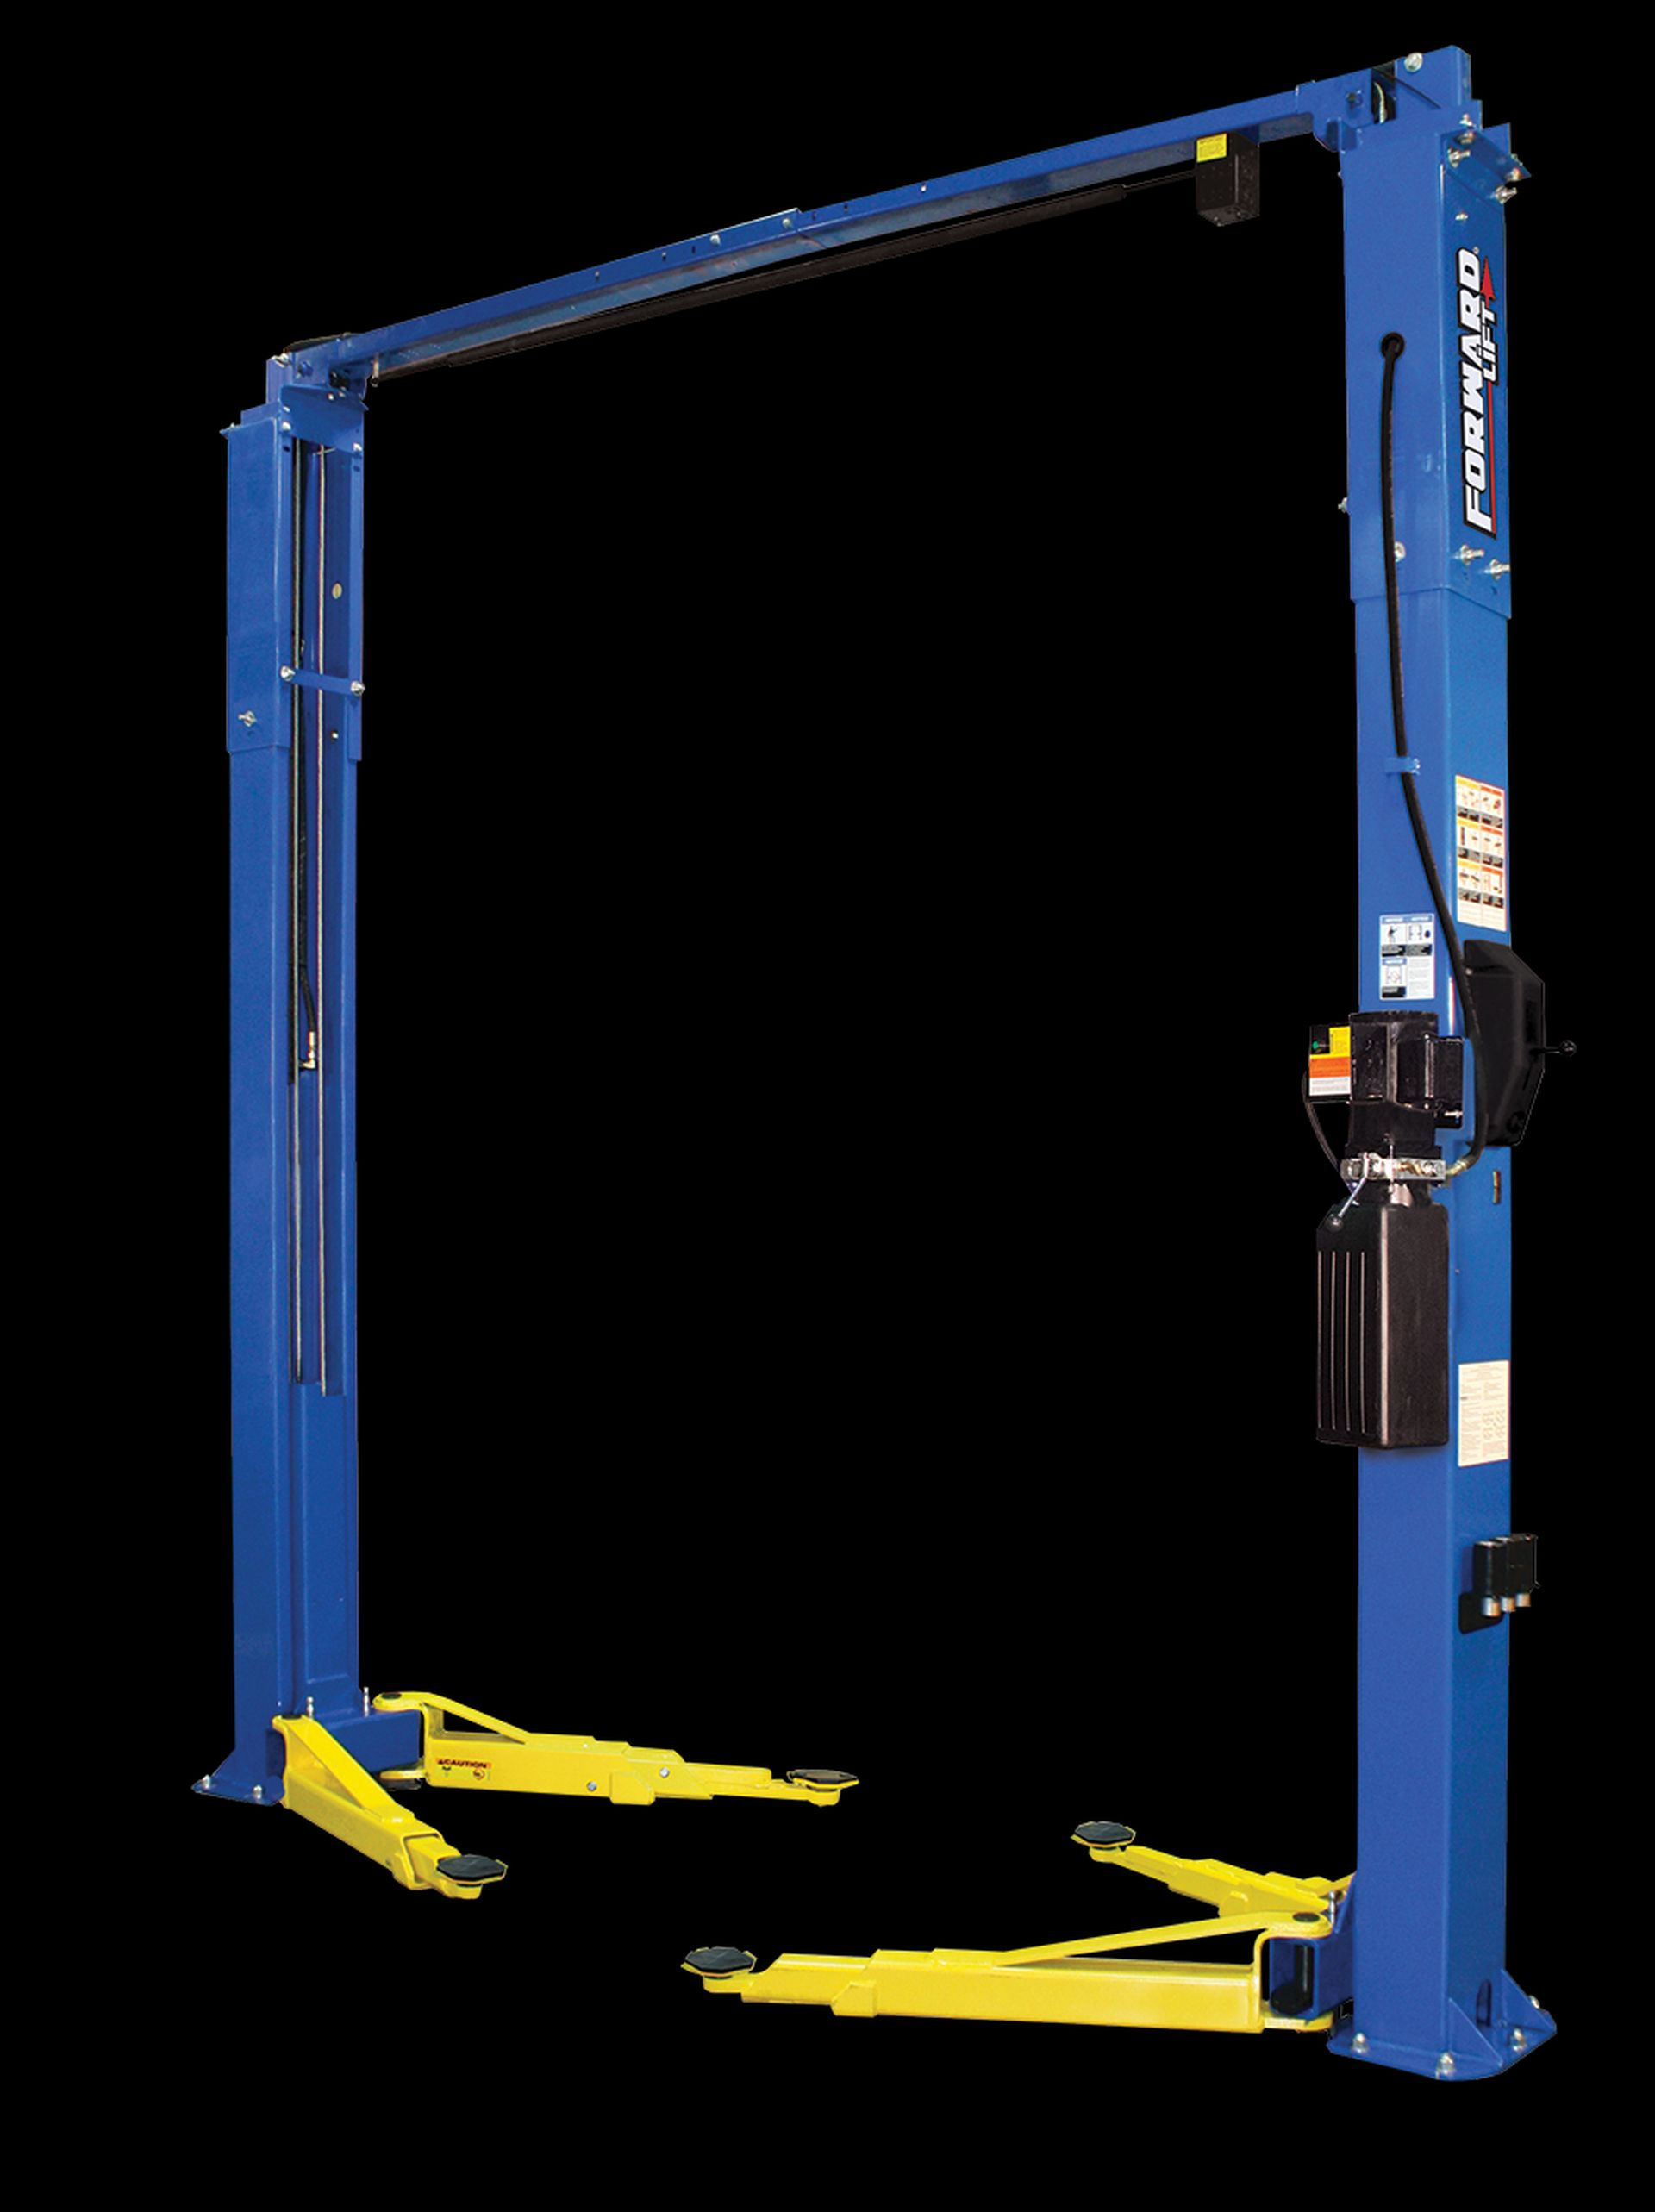 Forward Lift Unveils a Two-Post Lift for Servicing a Wide Range of Vehicles